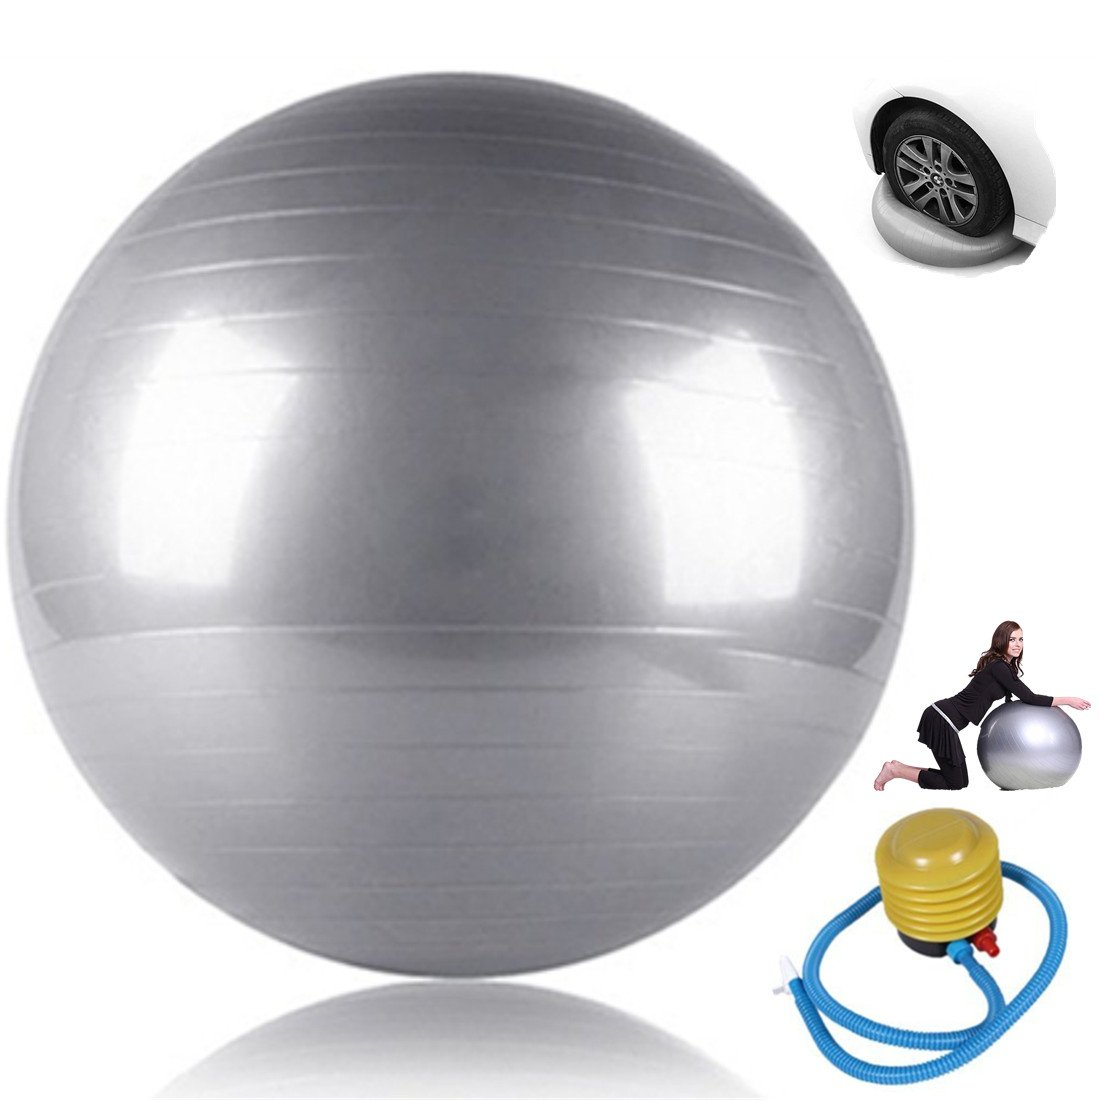 ESport Thick Yoga Ball Set, Exercise Balls with Quick Pump Fitness Stability & Balance - Anti-Burst & Non-Slip 25.6in/65cm by ESport